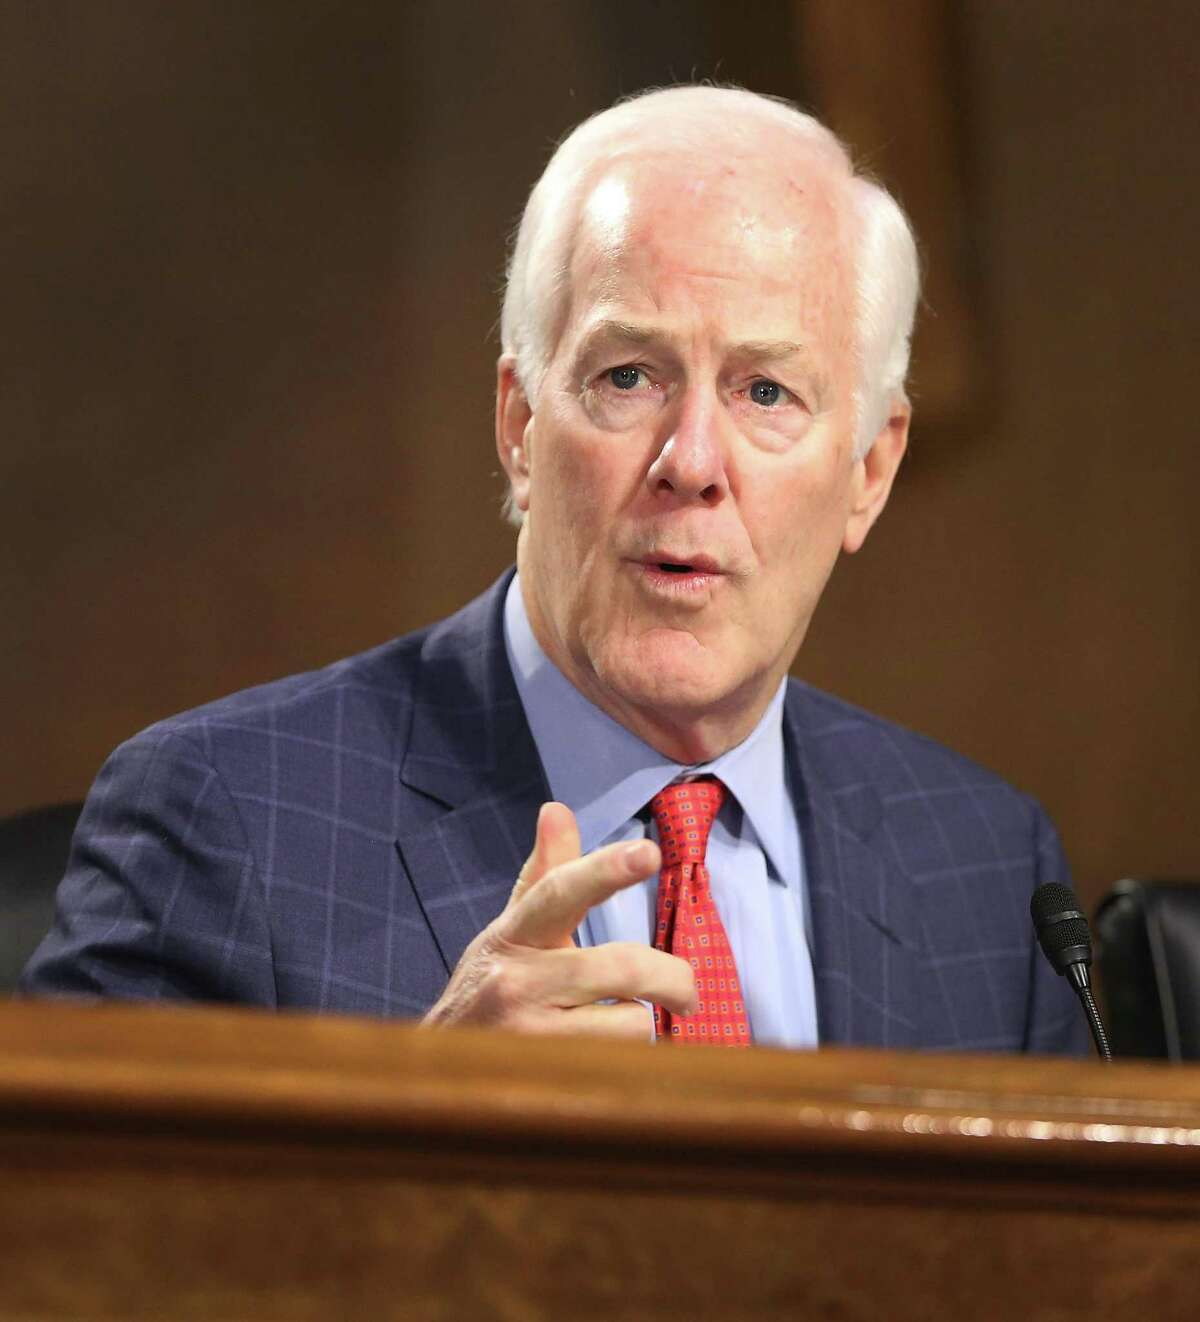 Sen. John Cornyn recently had a speech cancelled at Texas Southern University. This was a bad call.